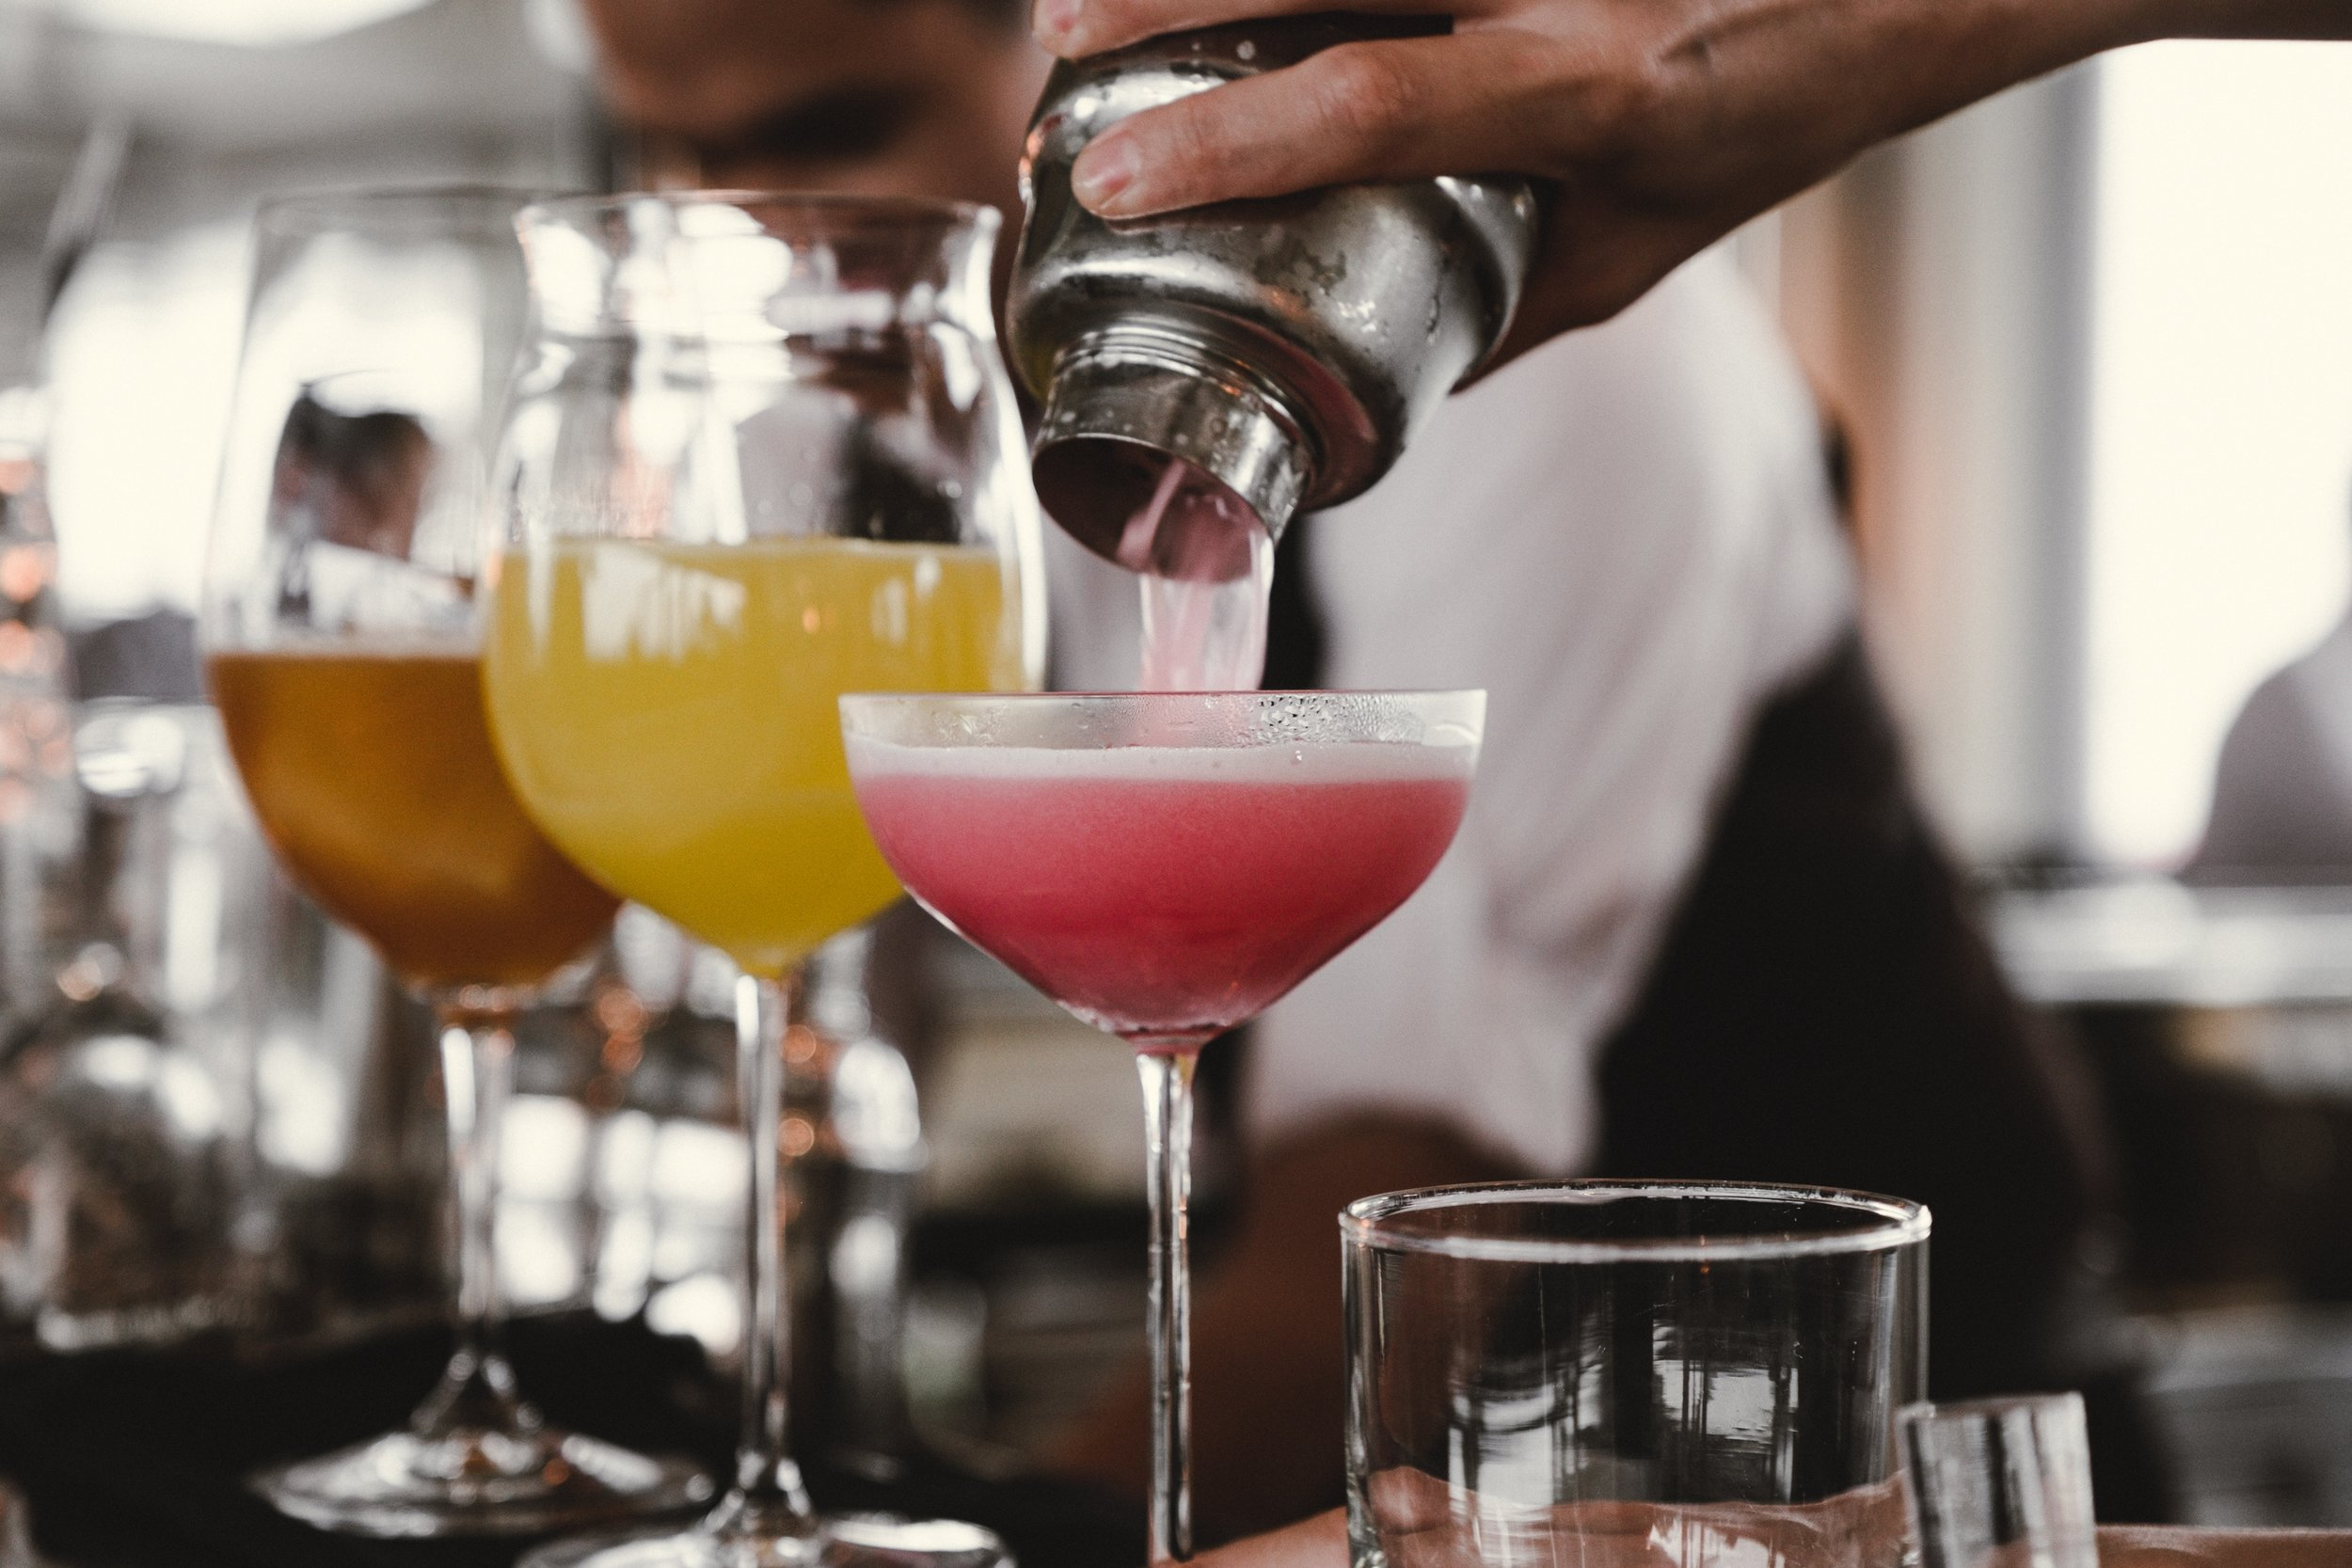 As a diabetic, be wary of the amount of sugar in cocktails. Photo from  Helena Yankovska  on  Unsplash